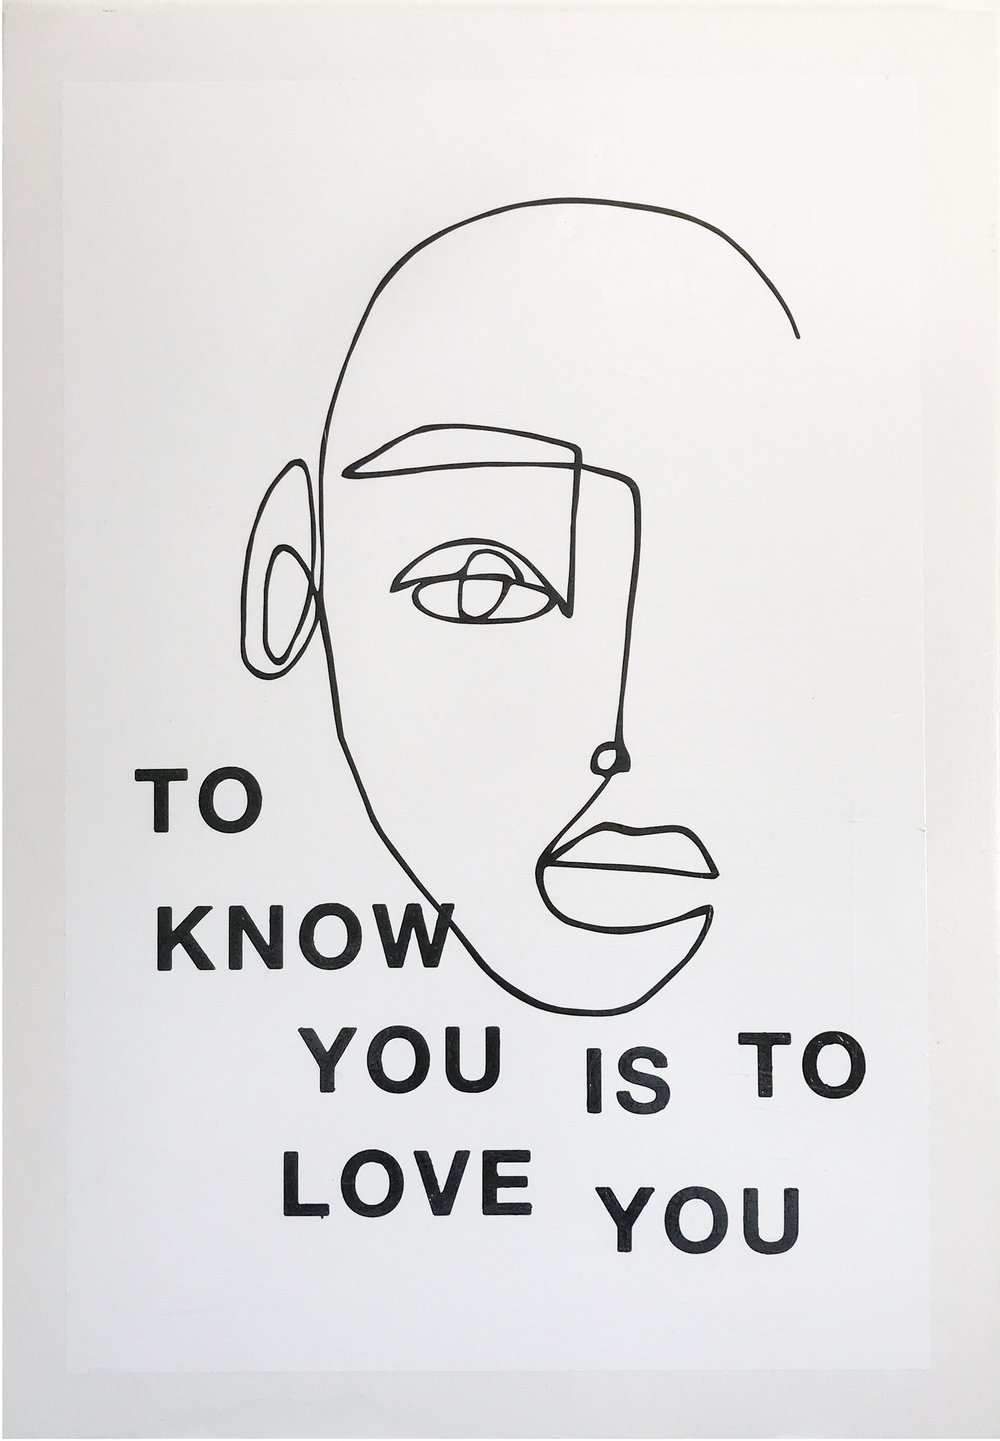 know YOU / LOVE YOU, 2018  acrylic x paper on wood  28x40 inches /  c/o mutti art projects